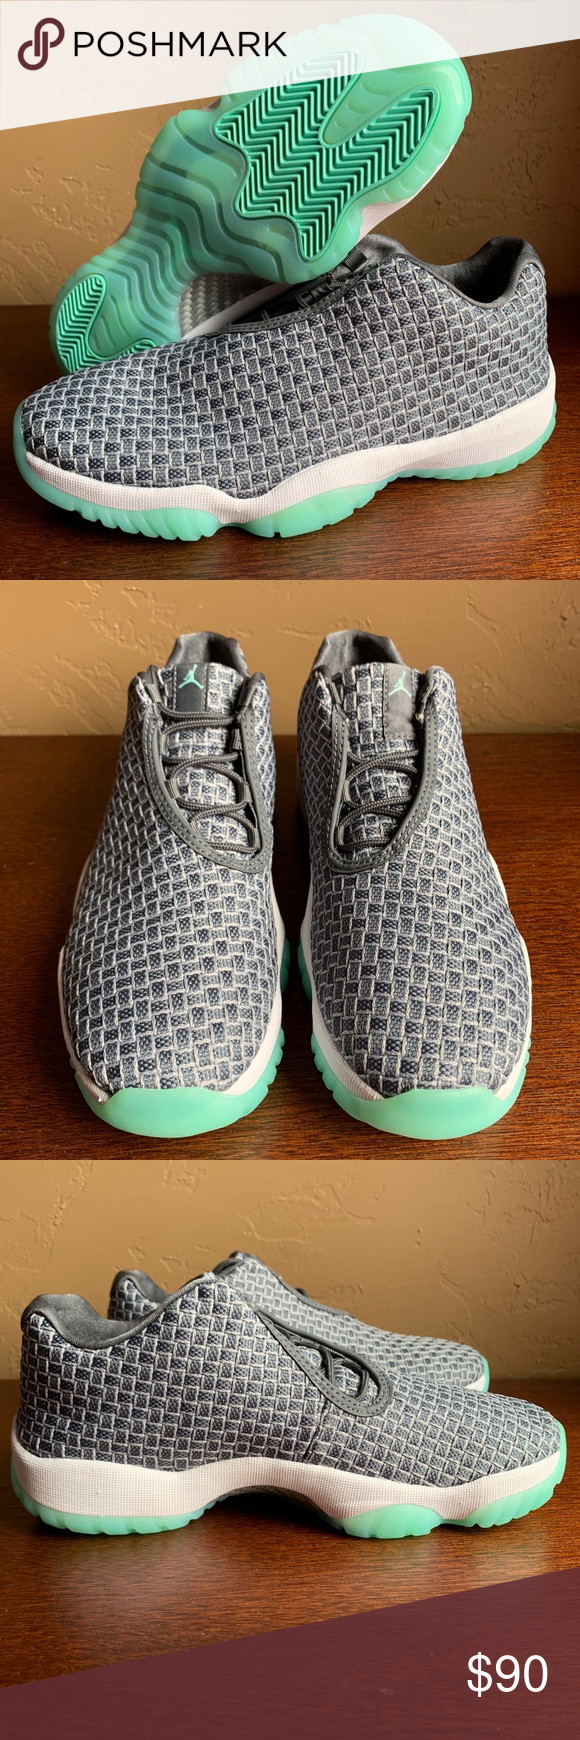 pretty nice 9a178 8b777 Nike Air Jordan Future Low Mens Size 8 Brand new without box I ll ship  within one day of purchase From a smoke free home Very vibrant colors!